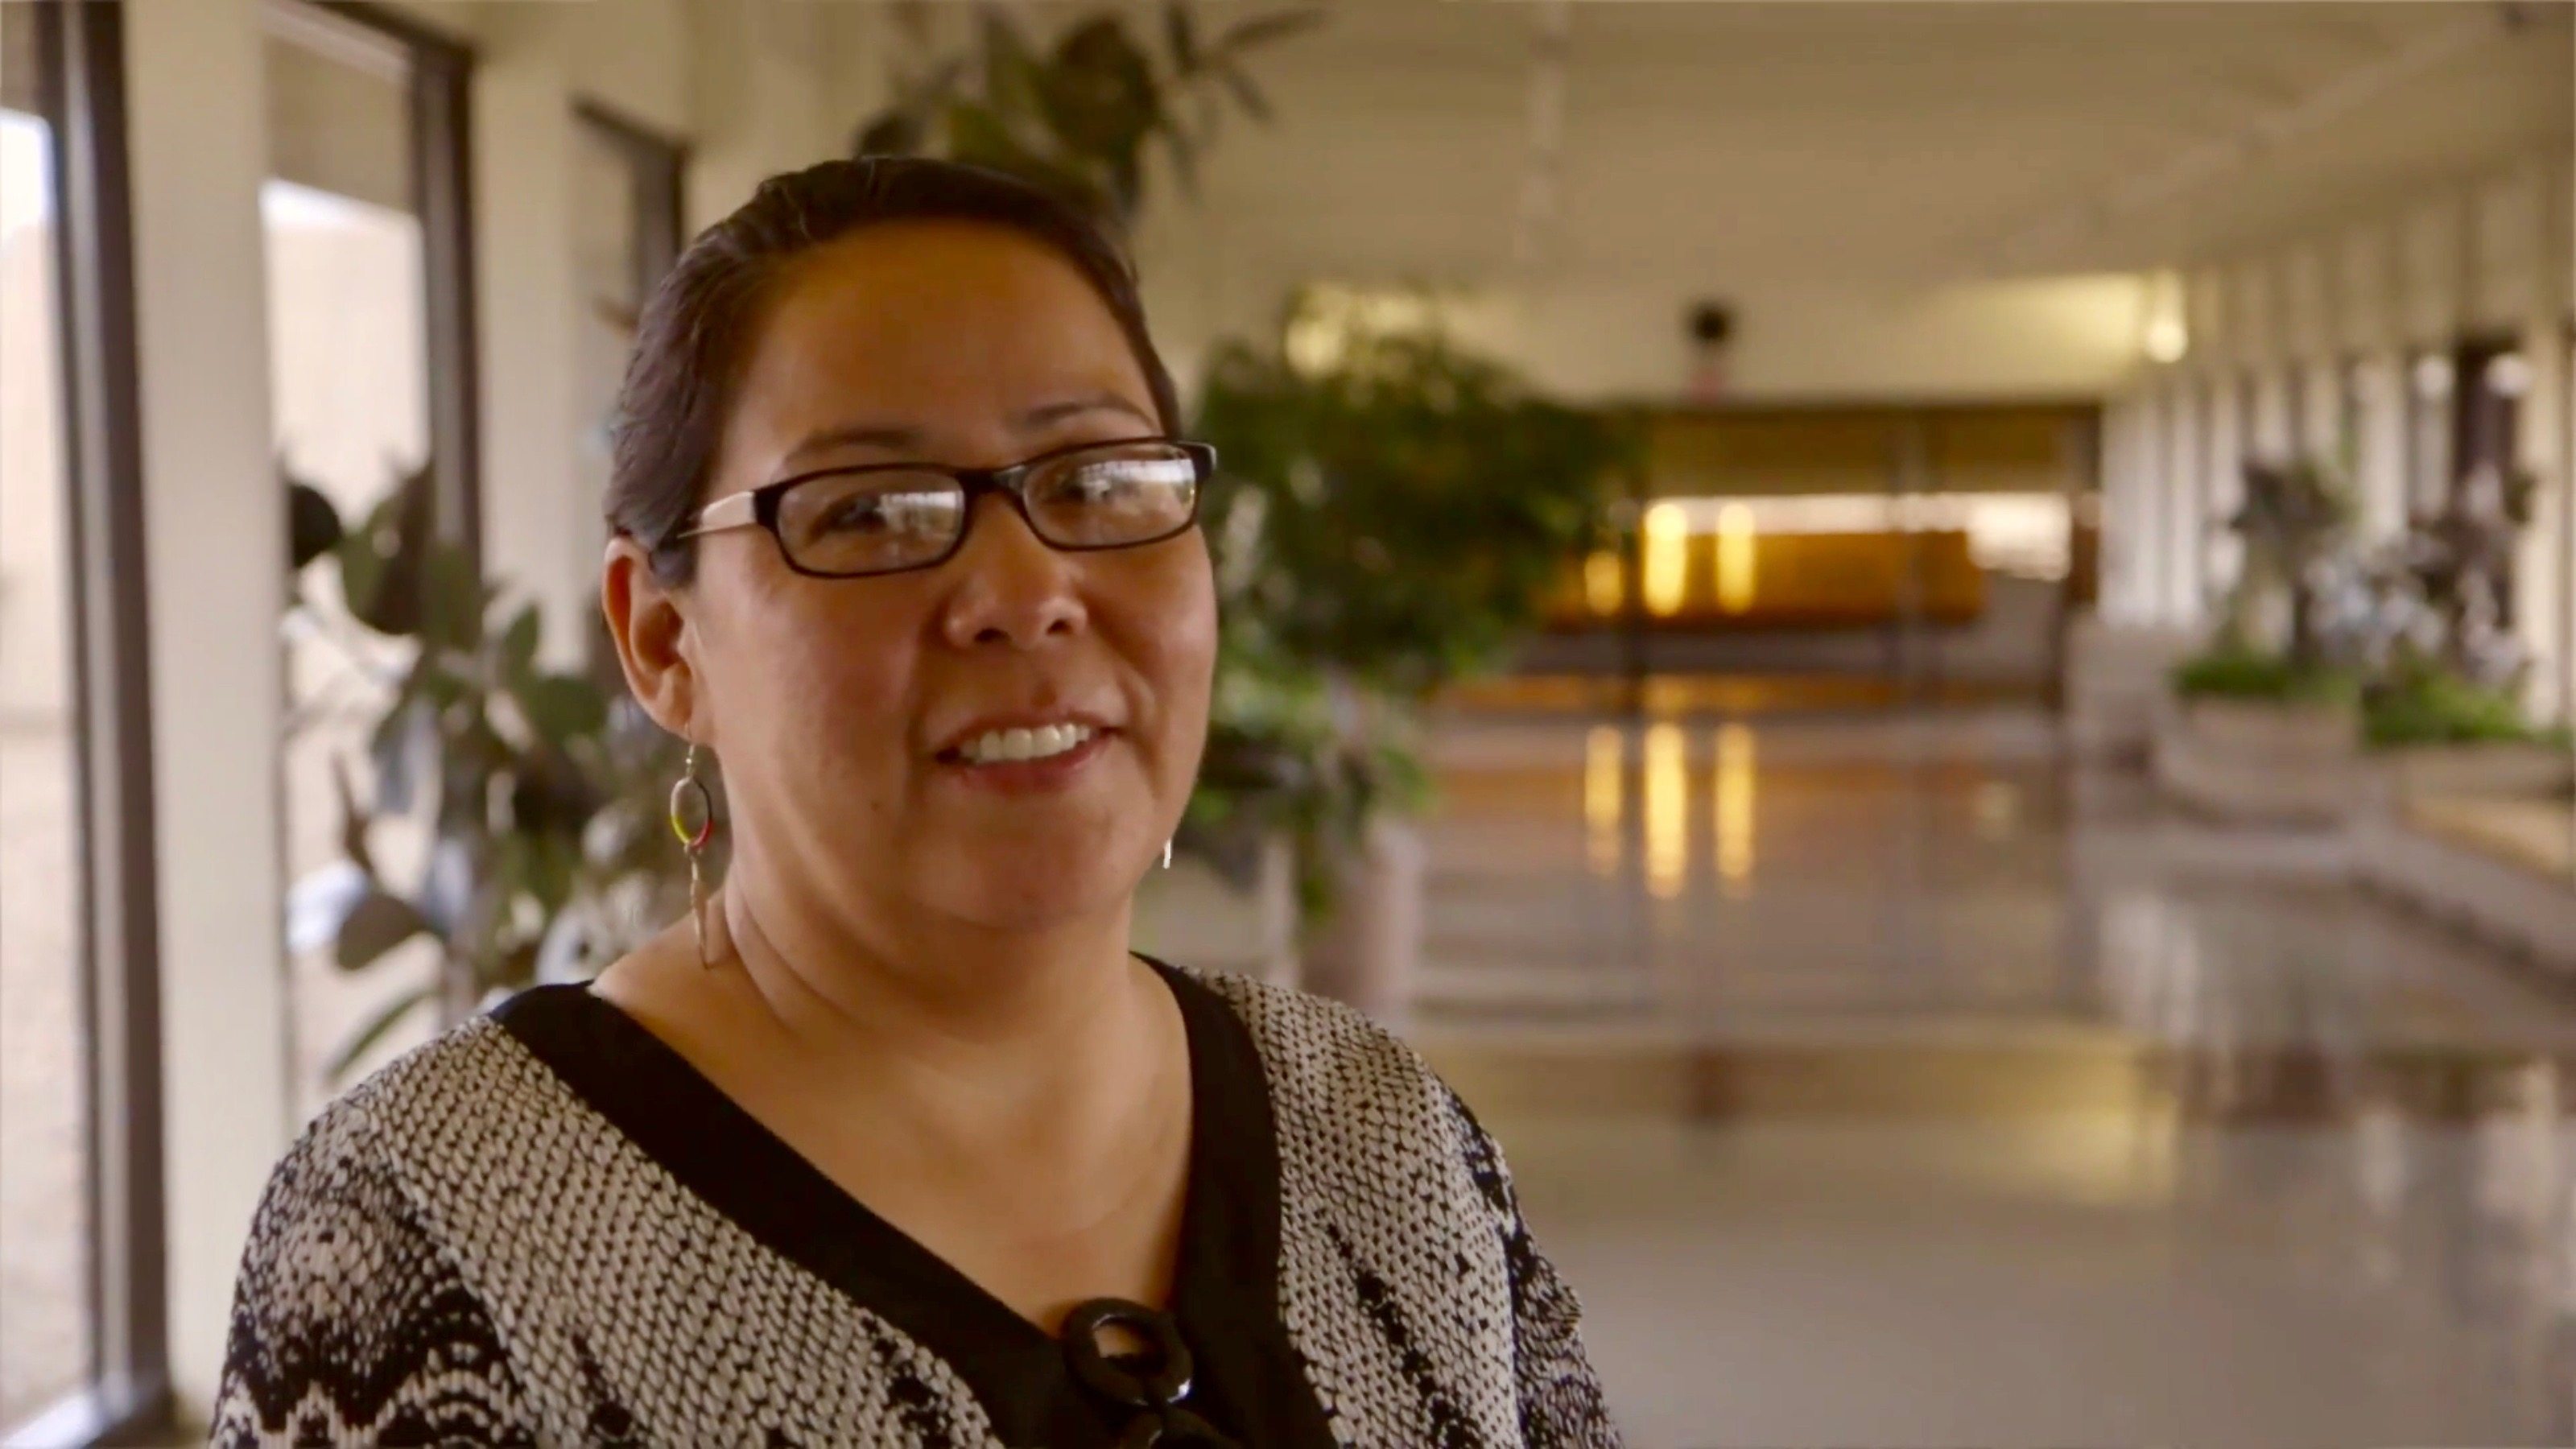 Government worker suspended after calling Native principal a 'rabid s----'